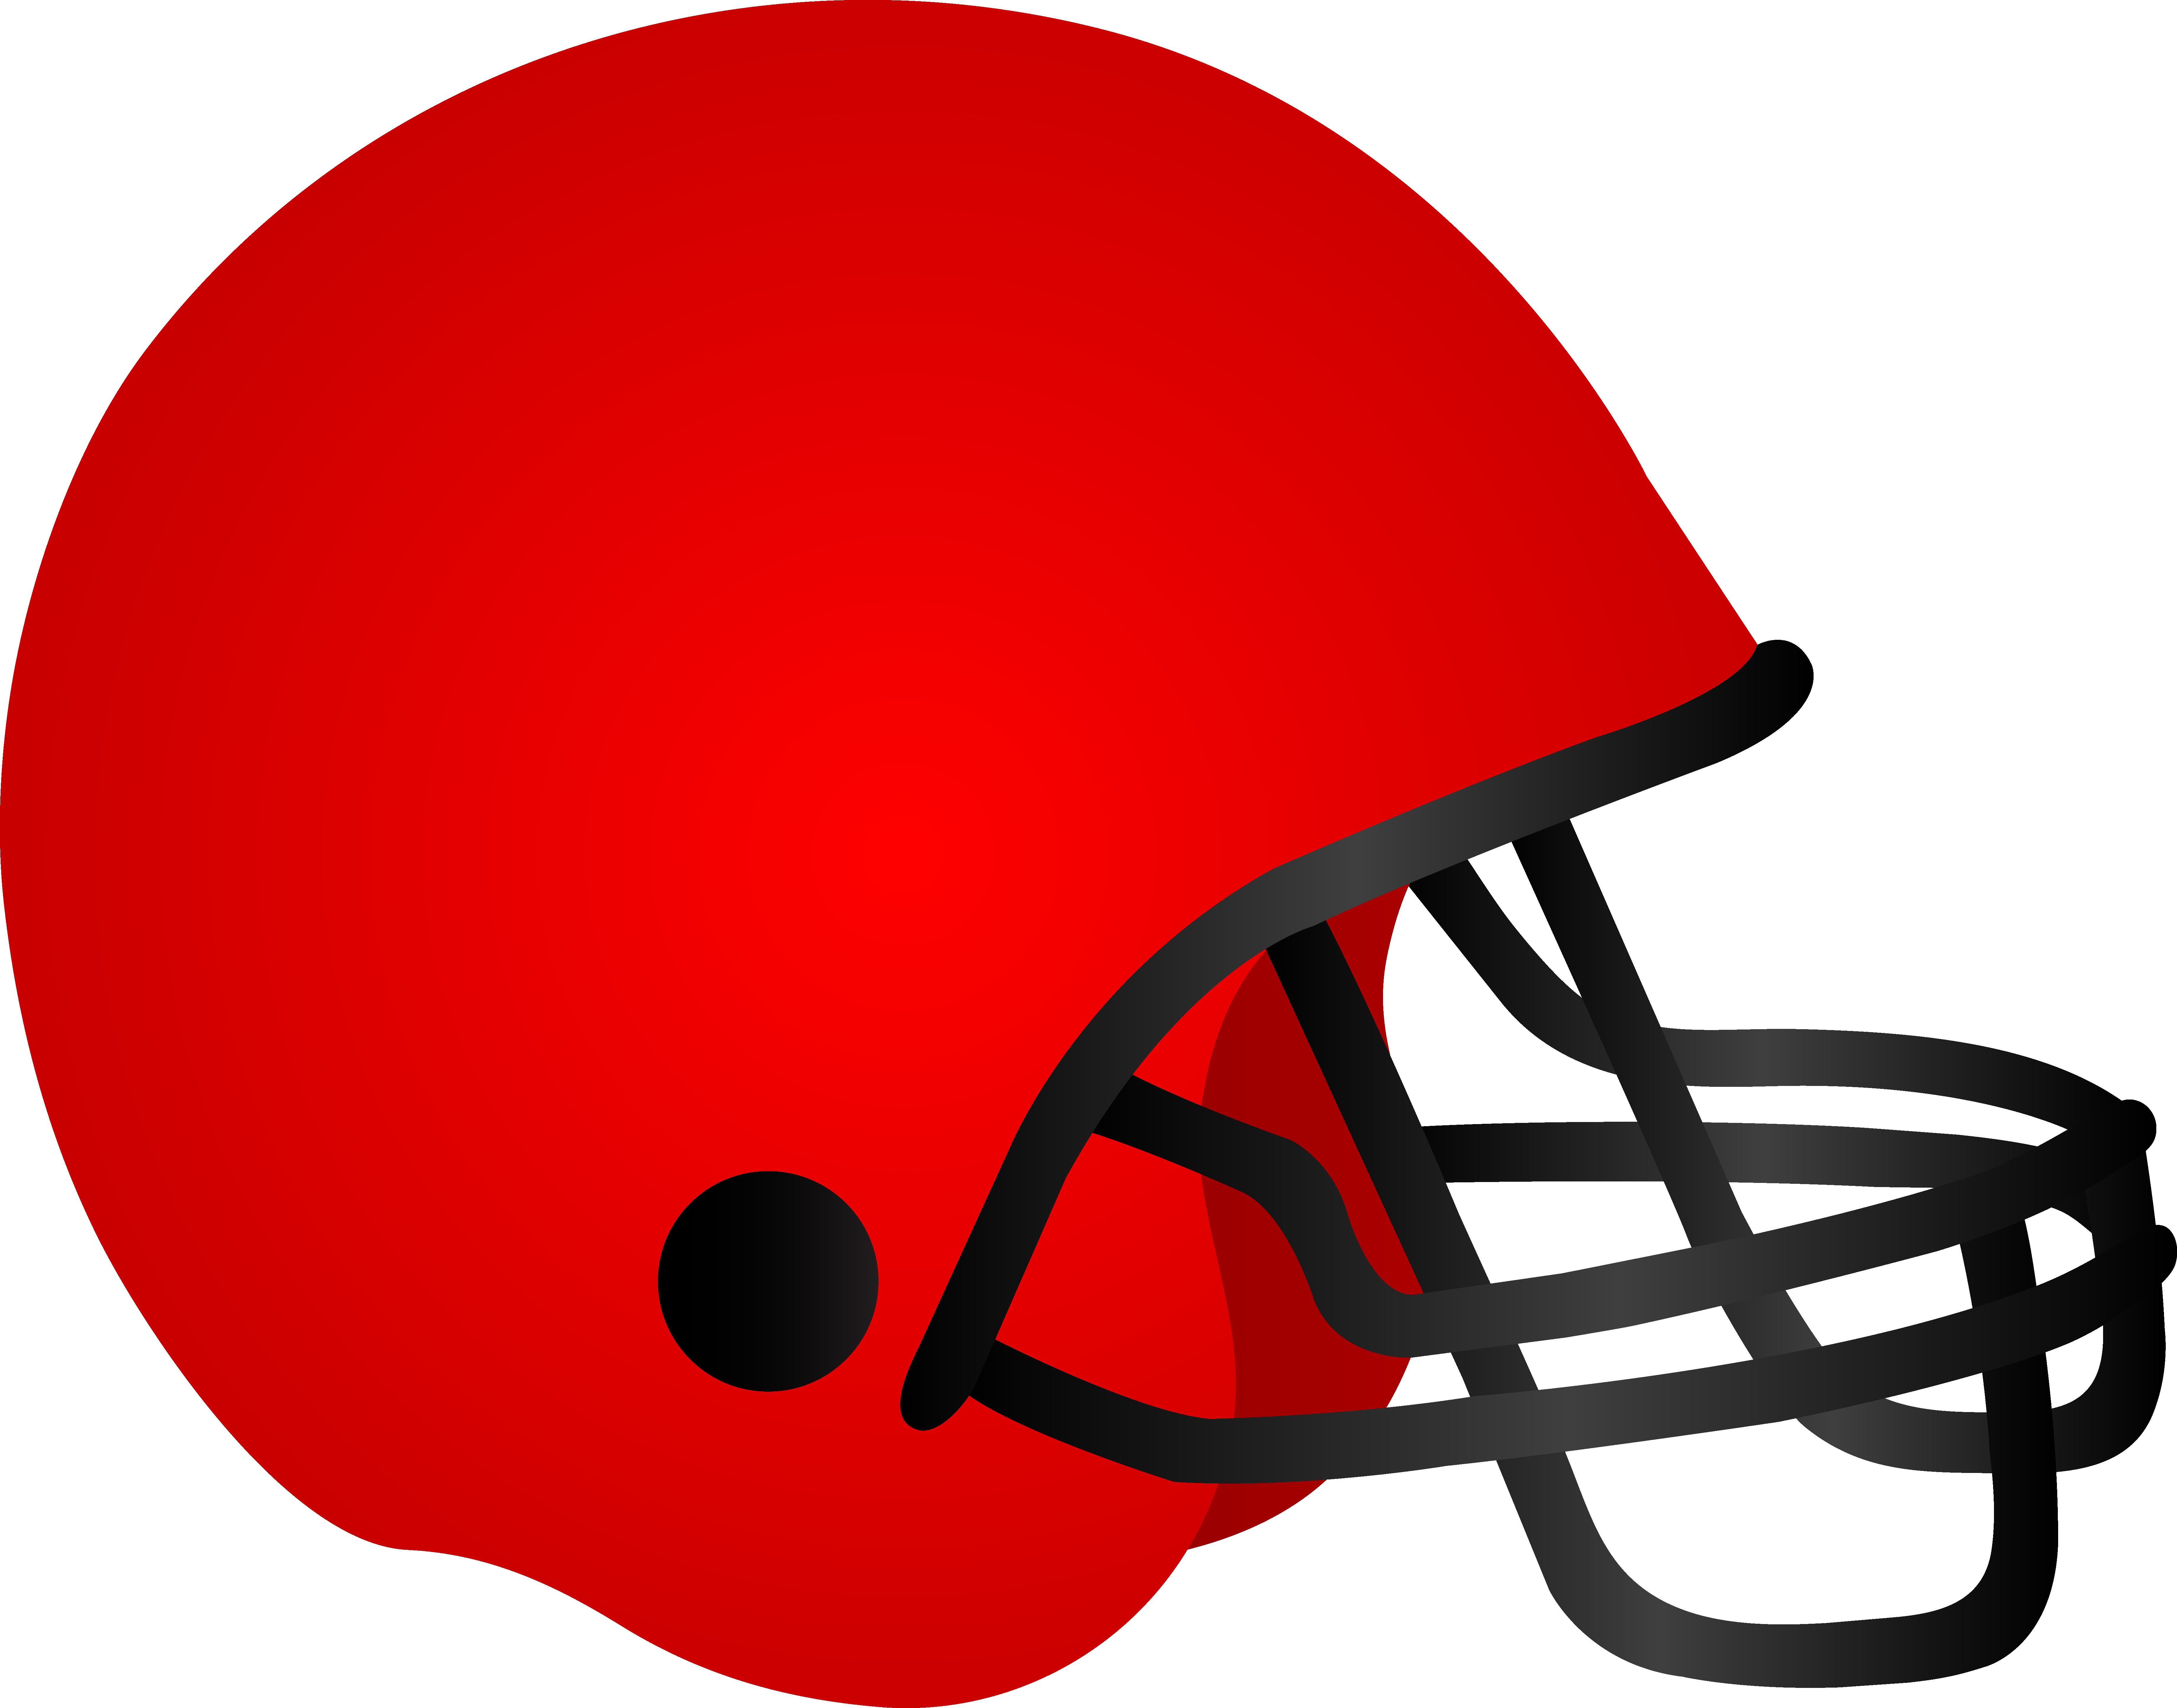 7362x5777 American Football Clipart Red Football Helmet Free